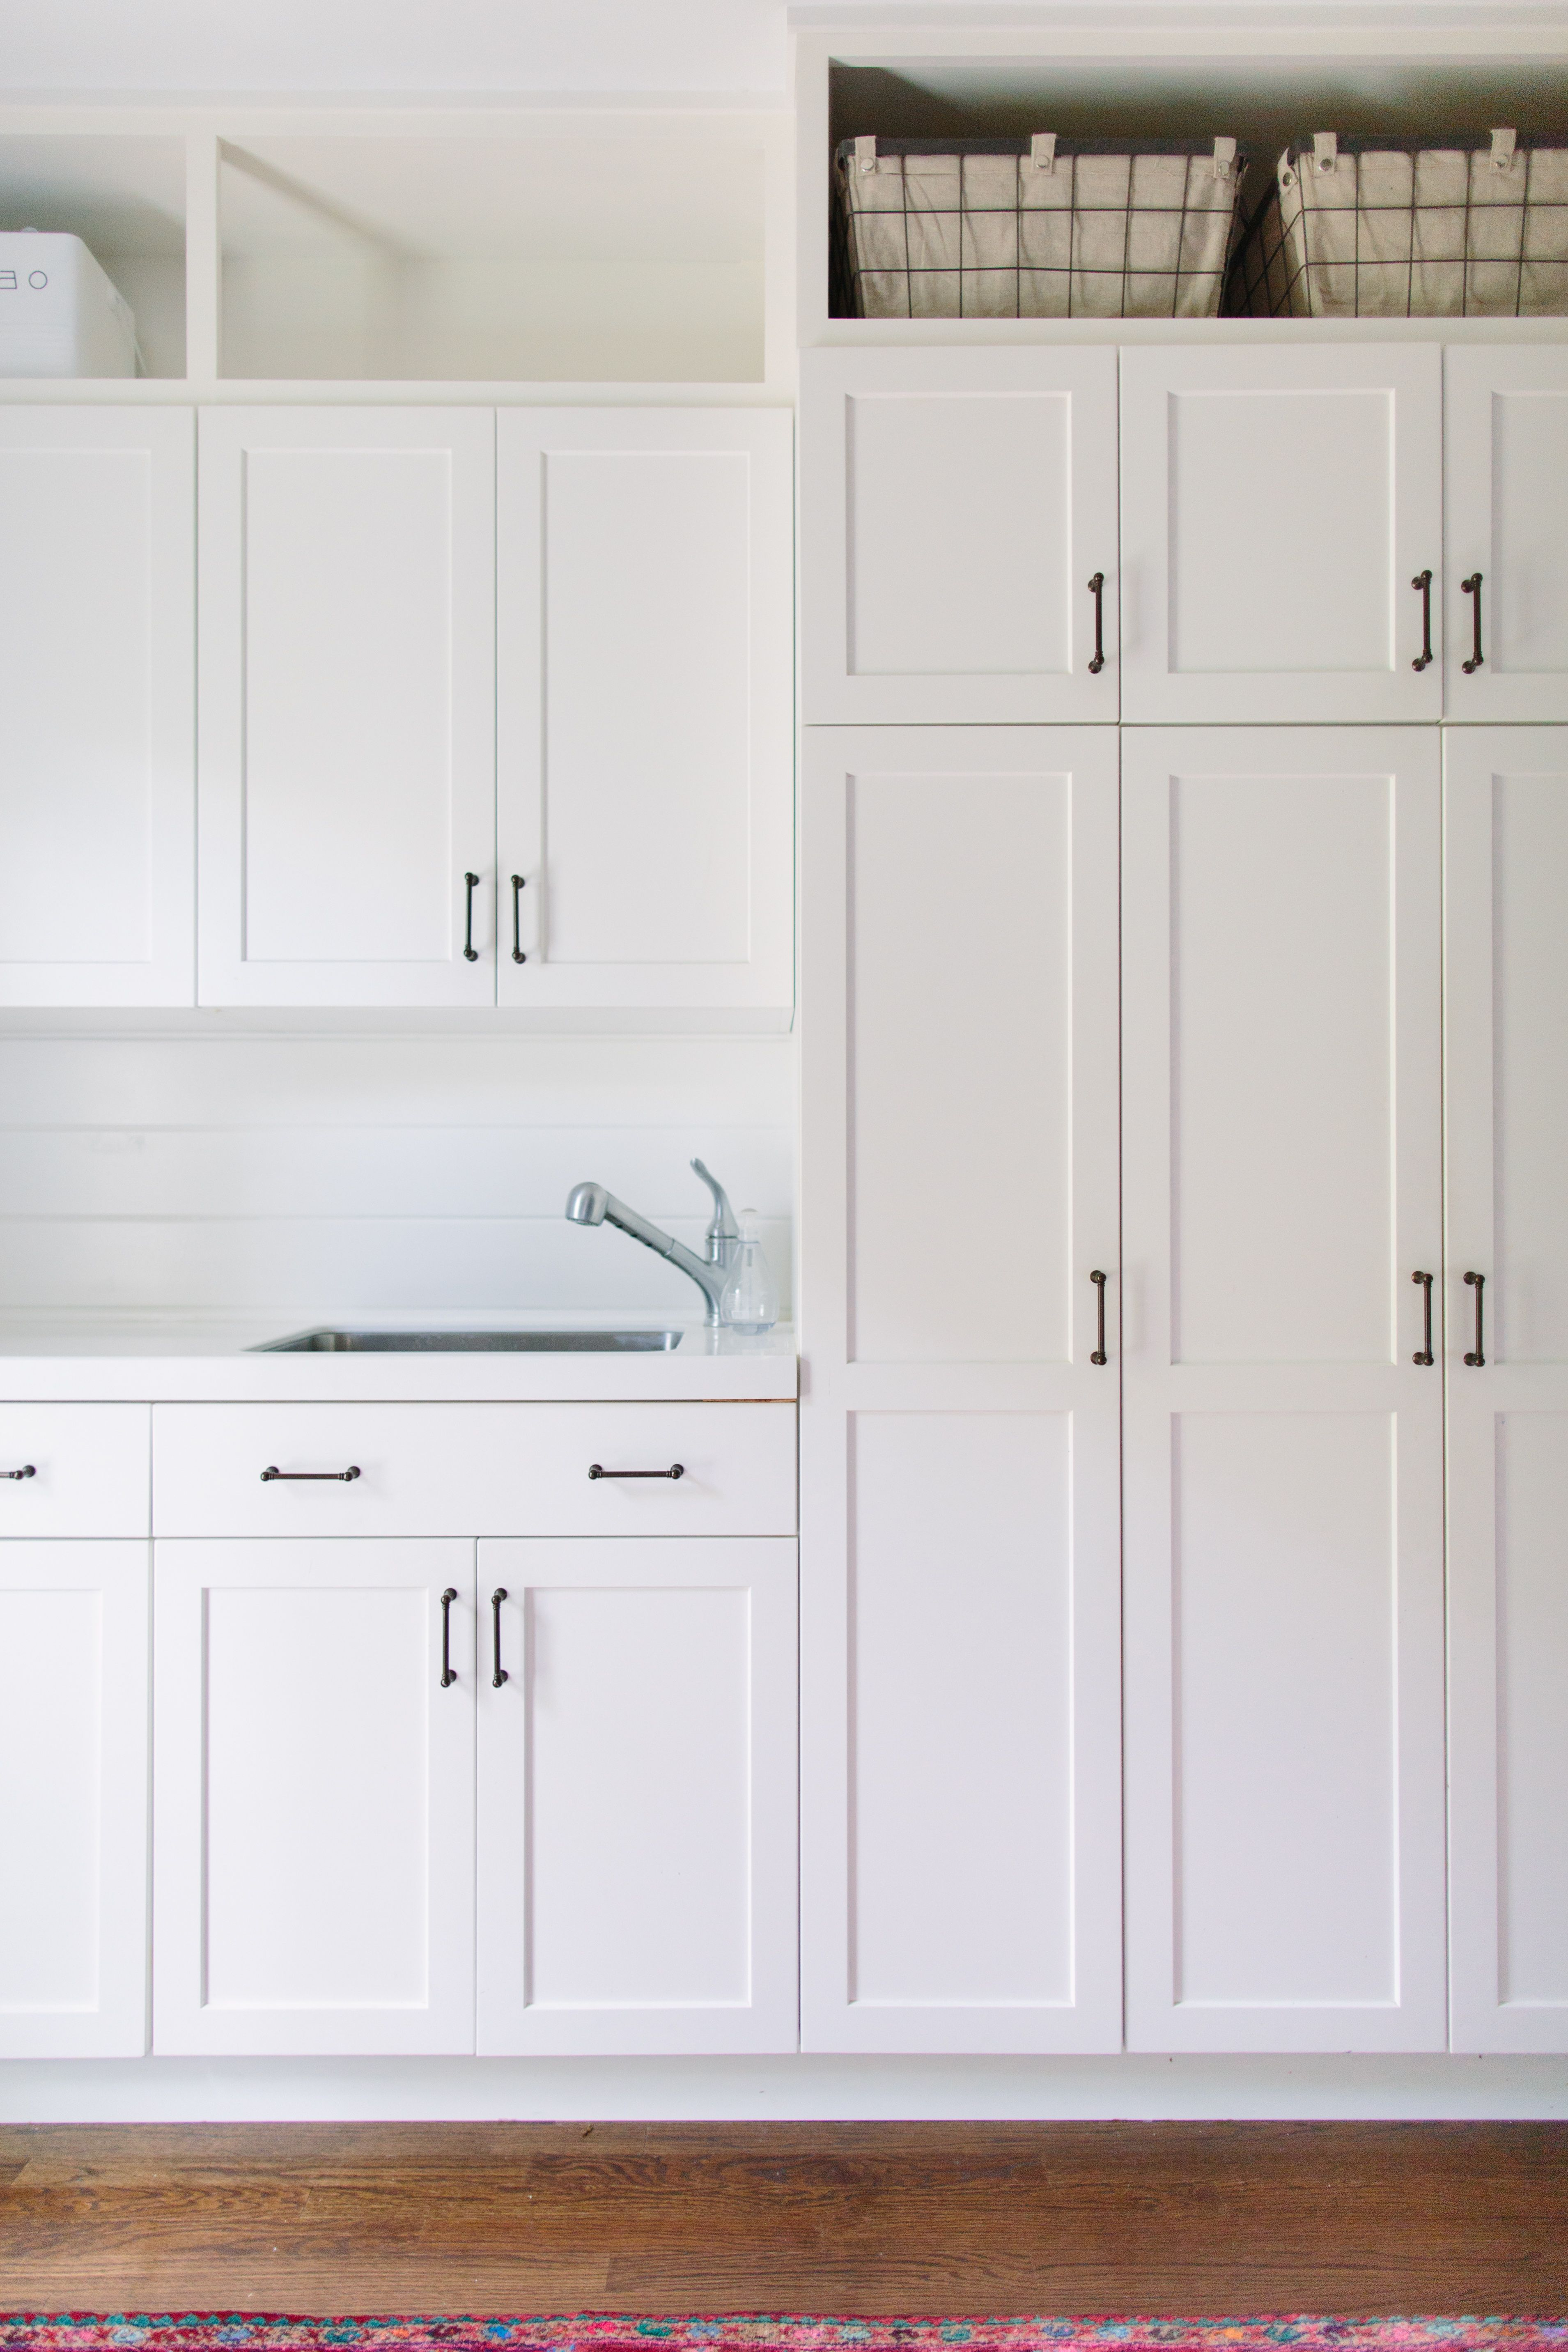 Take Any Cabinets All The Way Up! Floor To Ceiling Storage And A Sink.